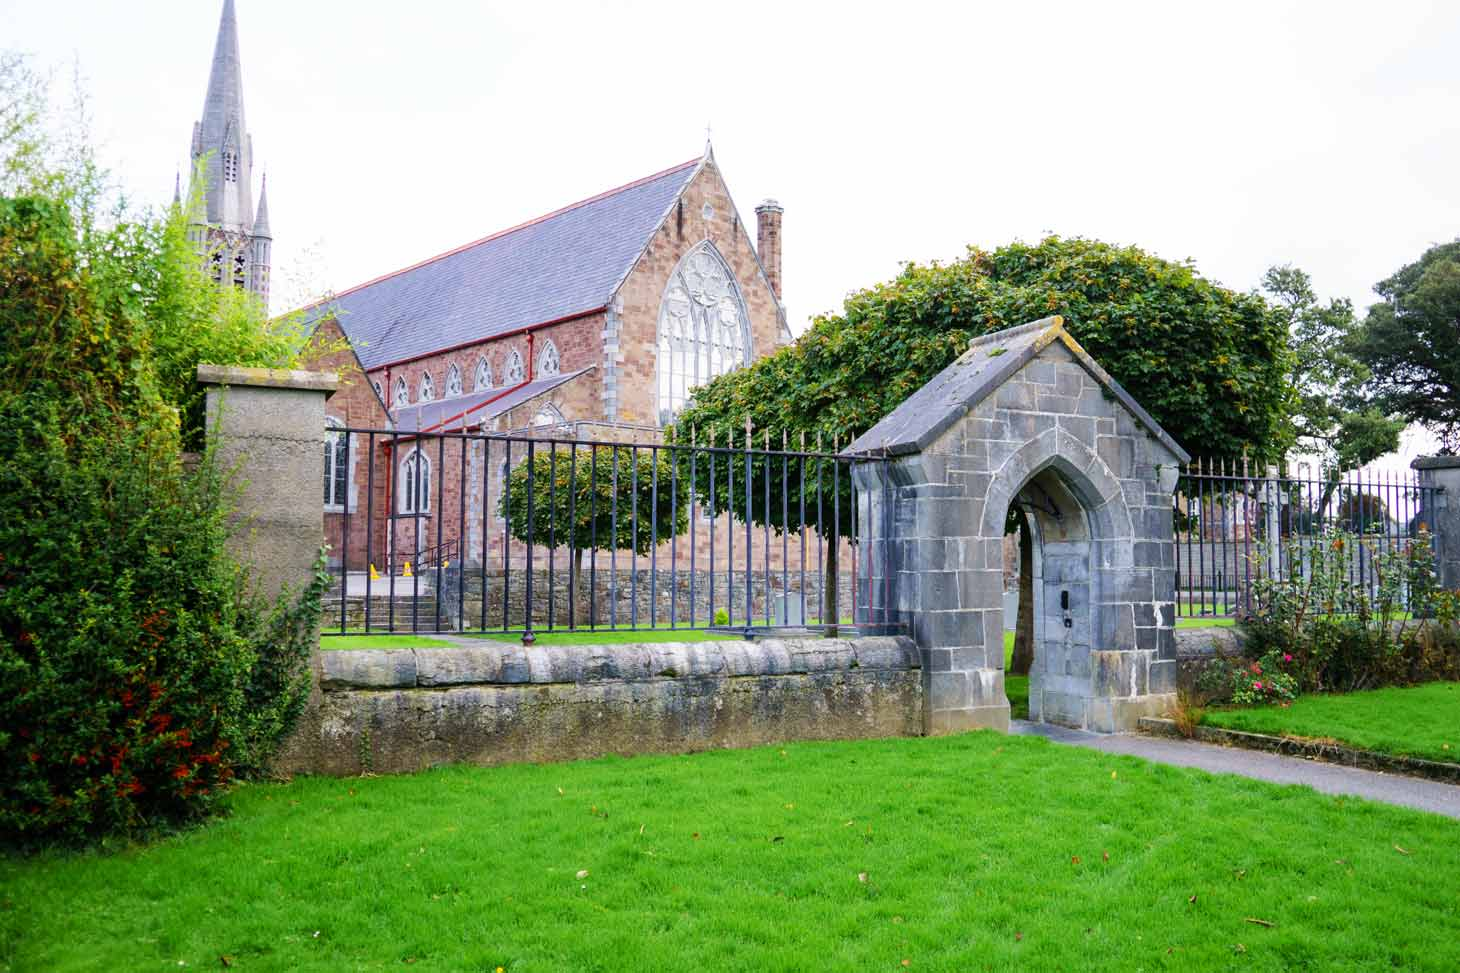 The rear of St Johns Church in Tralee County Kerry as seen from The Green.